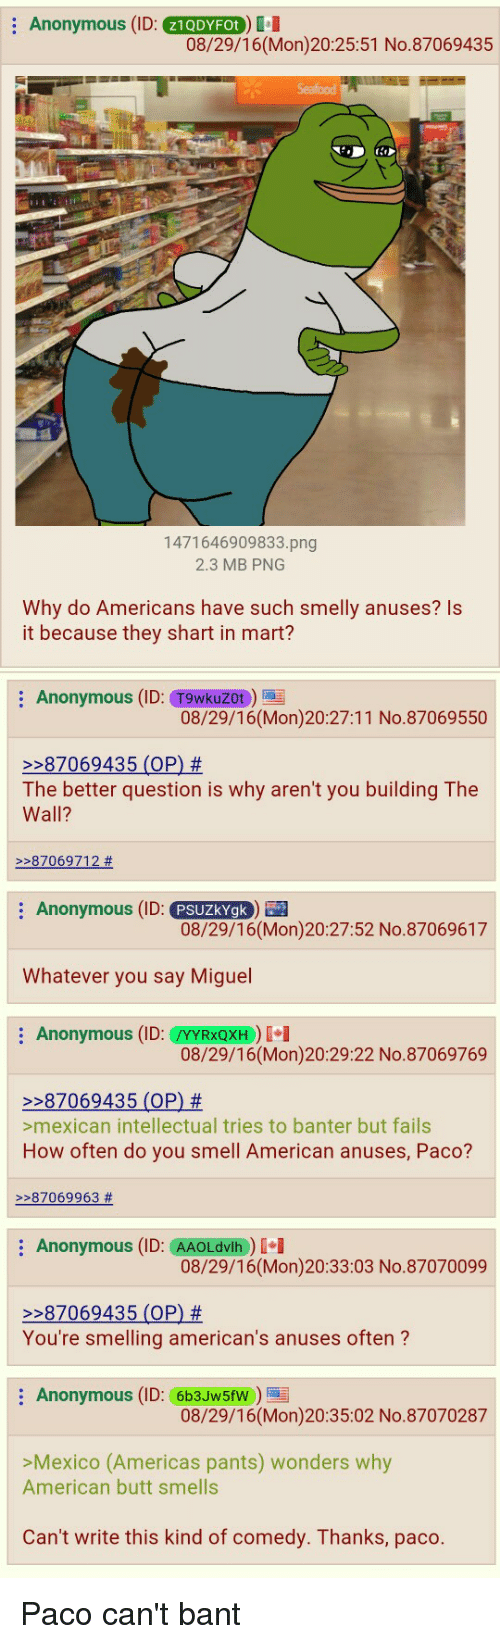 4chan, America, and Butt: Anonymous (ID  21QDYFOt  08/29/16(Mon) 20:25:51 No. 87069435  1471646909833.png  2.3 MB PNG  Why do Americans have such smelly anuses? Is  it because they shart in mart?  Anonymous (ID  Tgwkuzot  08/29/16 (Mon) 20:27:11 No. 87069550  87069435 (OP)  The better question is why aren't you building The  Wall?  87069712  Anonymous (ID  PSUZkYgk  08/29/16(Mon)20:27:52 No.87069617  Whatever you say Miguel  Anonymous (ID: YYRXQXH)  08/29/16 (Mon)20:29:22 No.87069769  87069435 (OP)  >mexican intellectual tries to banter but fails  How often do you smell American anuses, Paco?  87069963  Anonymous (ID: AAOLdvlh  I I  08/29/16 (Mon)20:33:03 No.87070099  87069435 (OP)  You're smelling american's anuses often  Anonymous (ID: 6b3JW5fW  08/29/16 (Mon)20:35:02 No.87070287  >Mexico (Americas pants) wonders why  American butt smells  Can't write this kind of comedy. Thanks, paco Paco can't bant